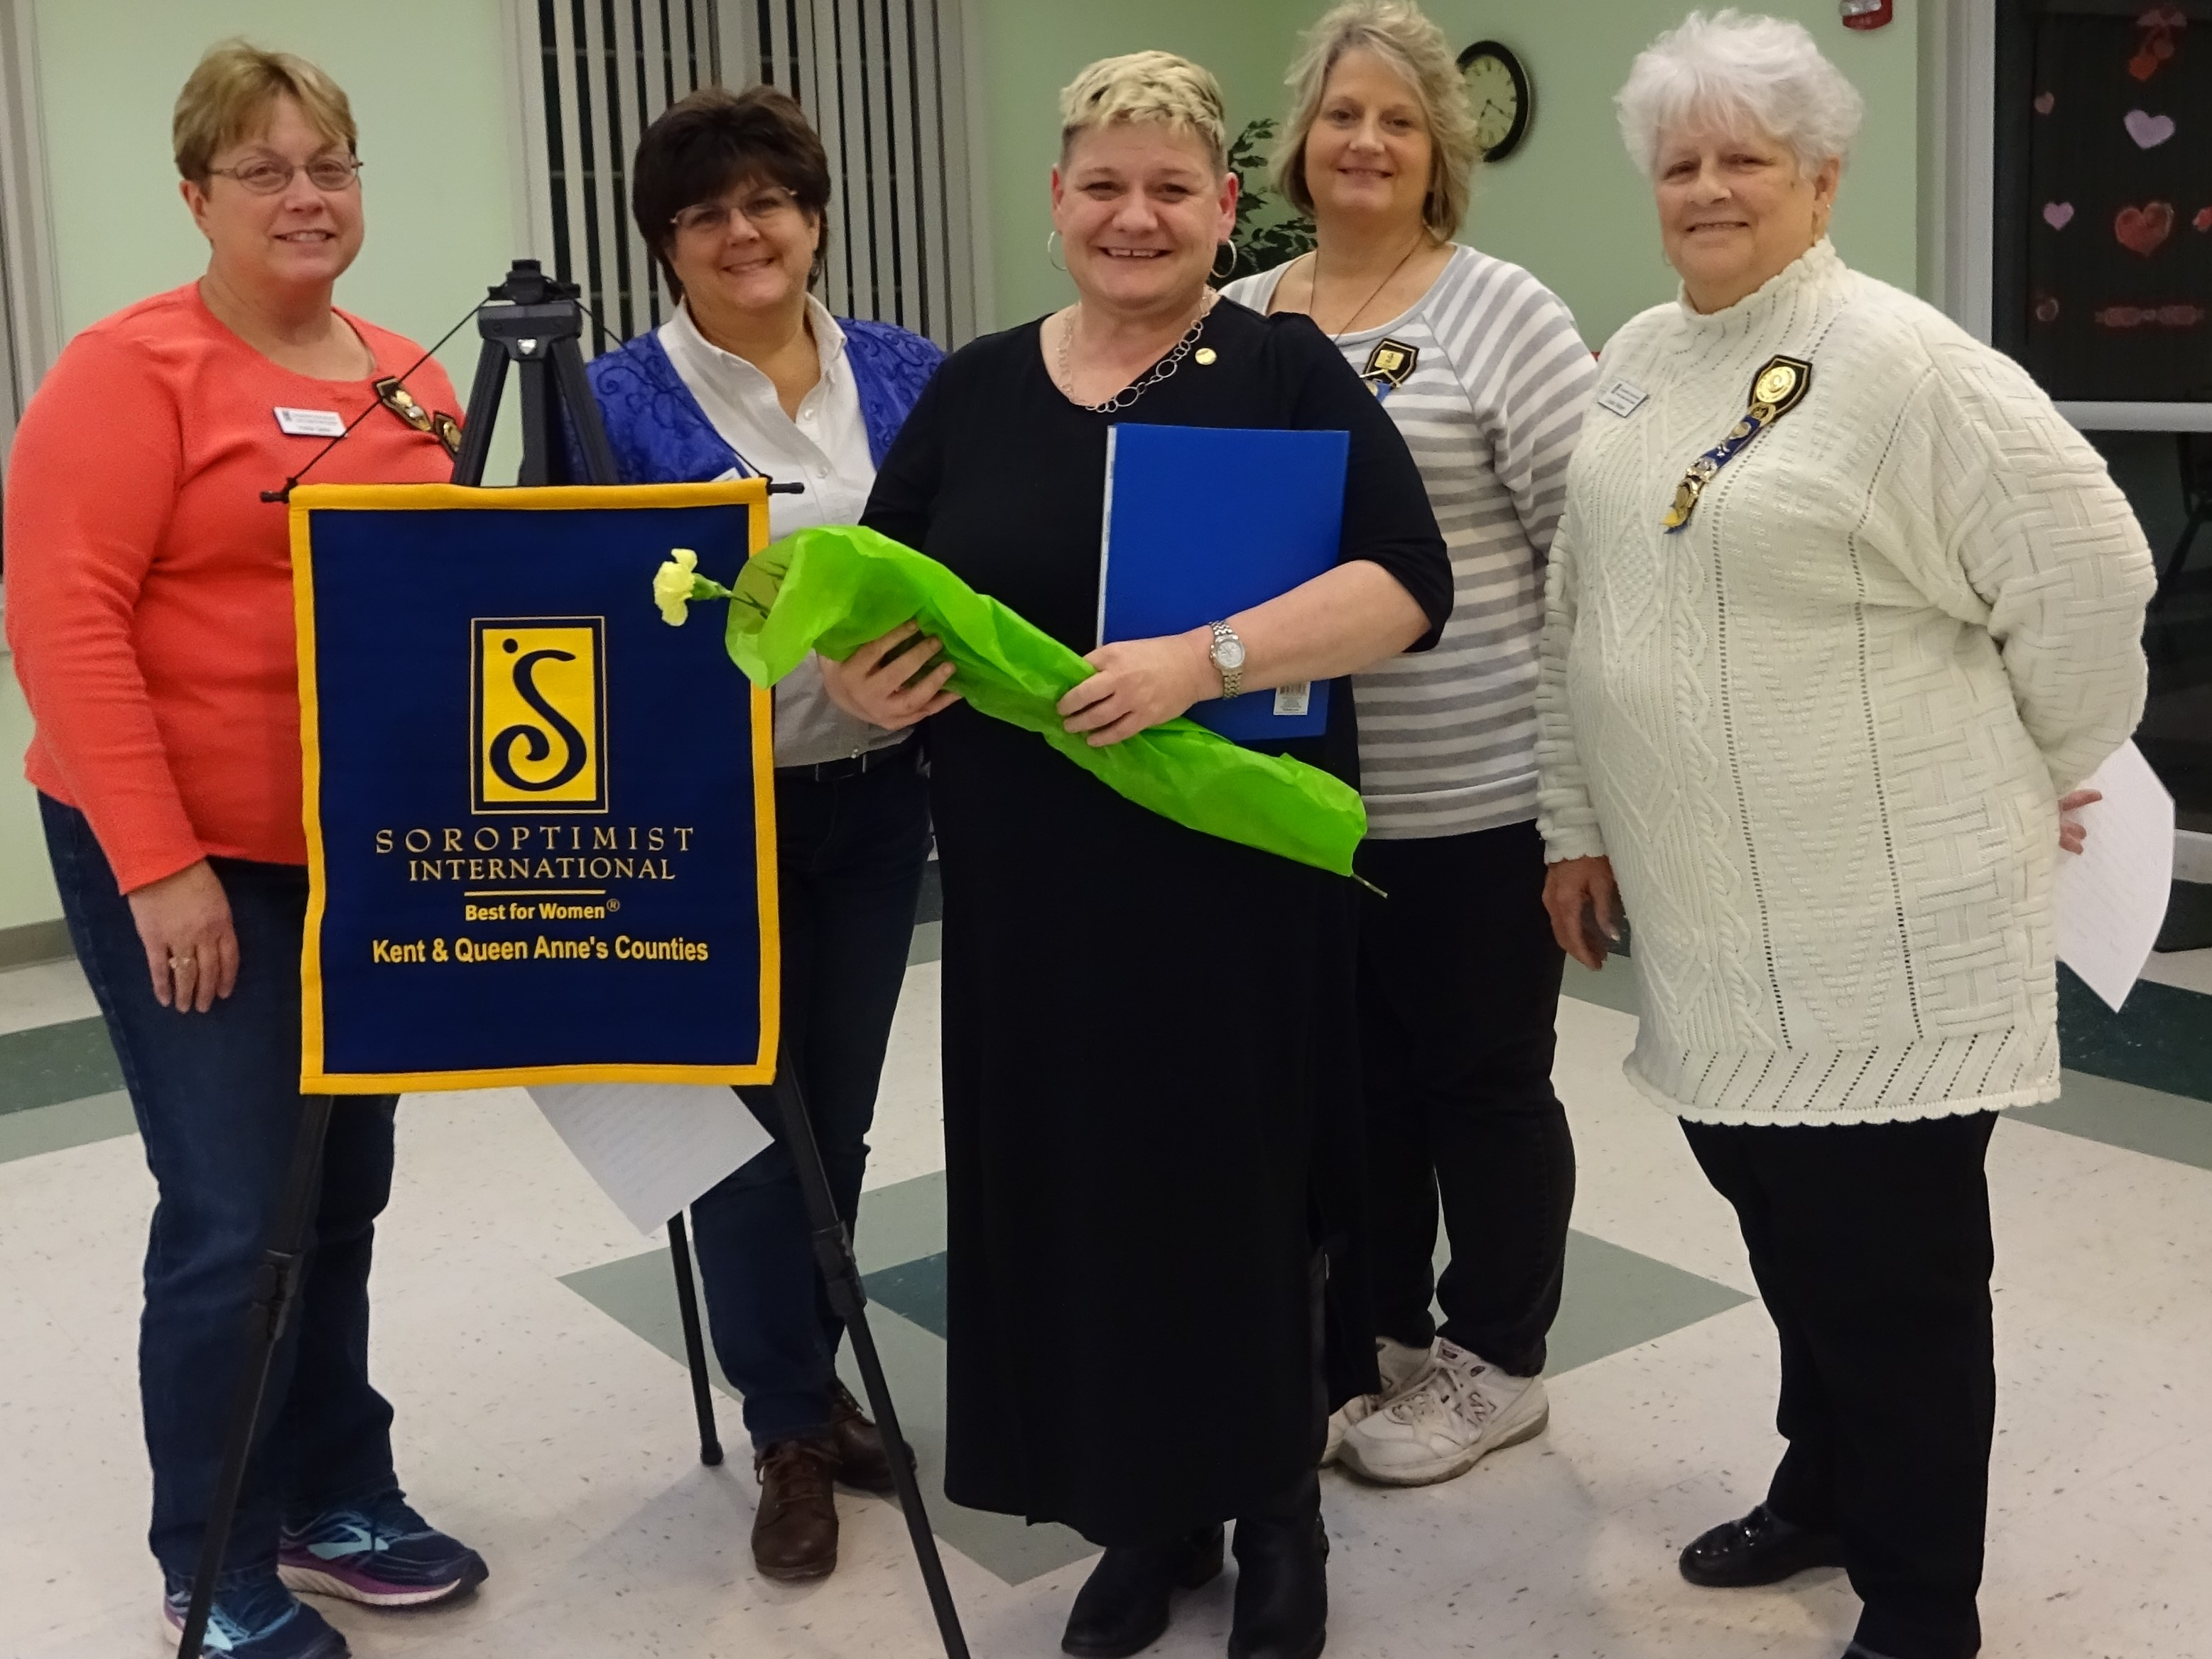 From Left to Right are Vickie Quinn, Board Member, Wendy Bramble, President-elect, Jodi Olson, Connie Morris, South Atlantic Region Treasurer, Louise Skinner, President. - Contributed Photo